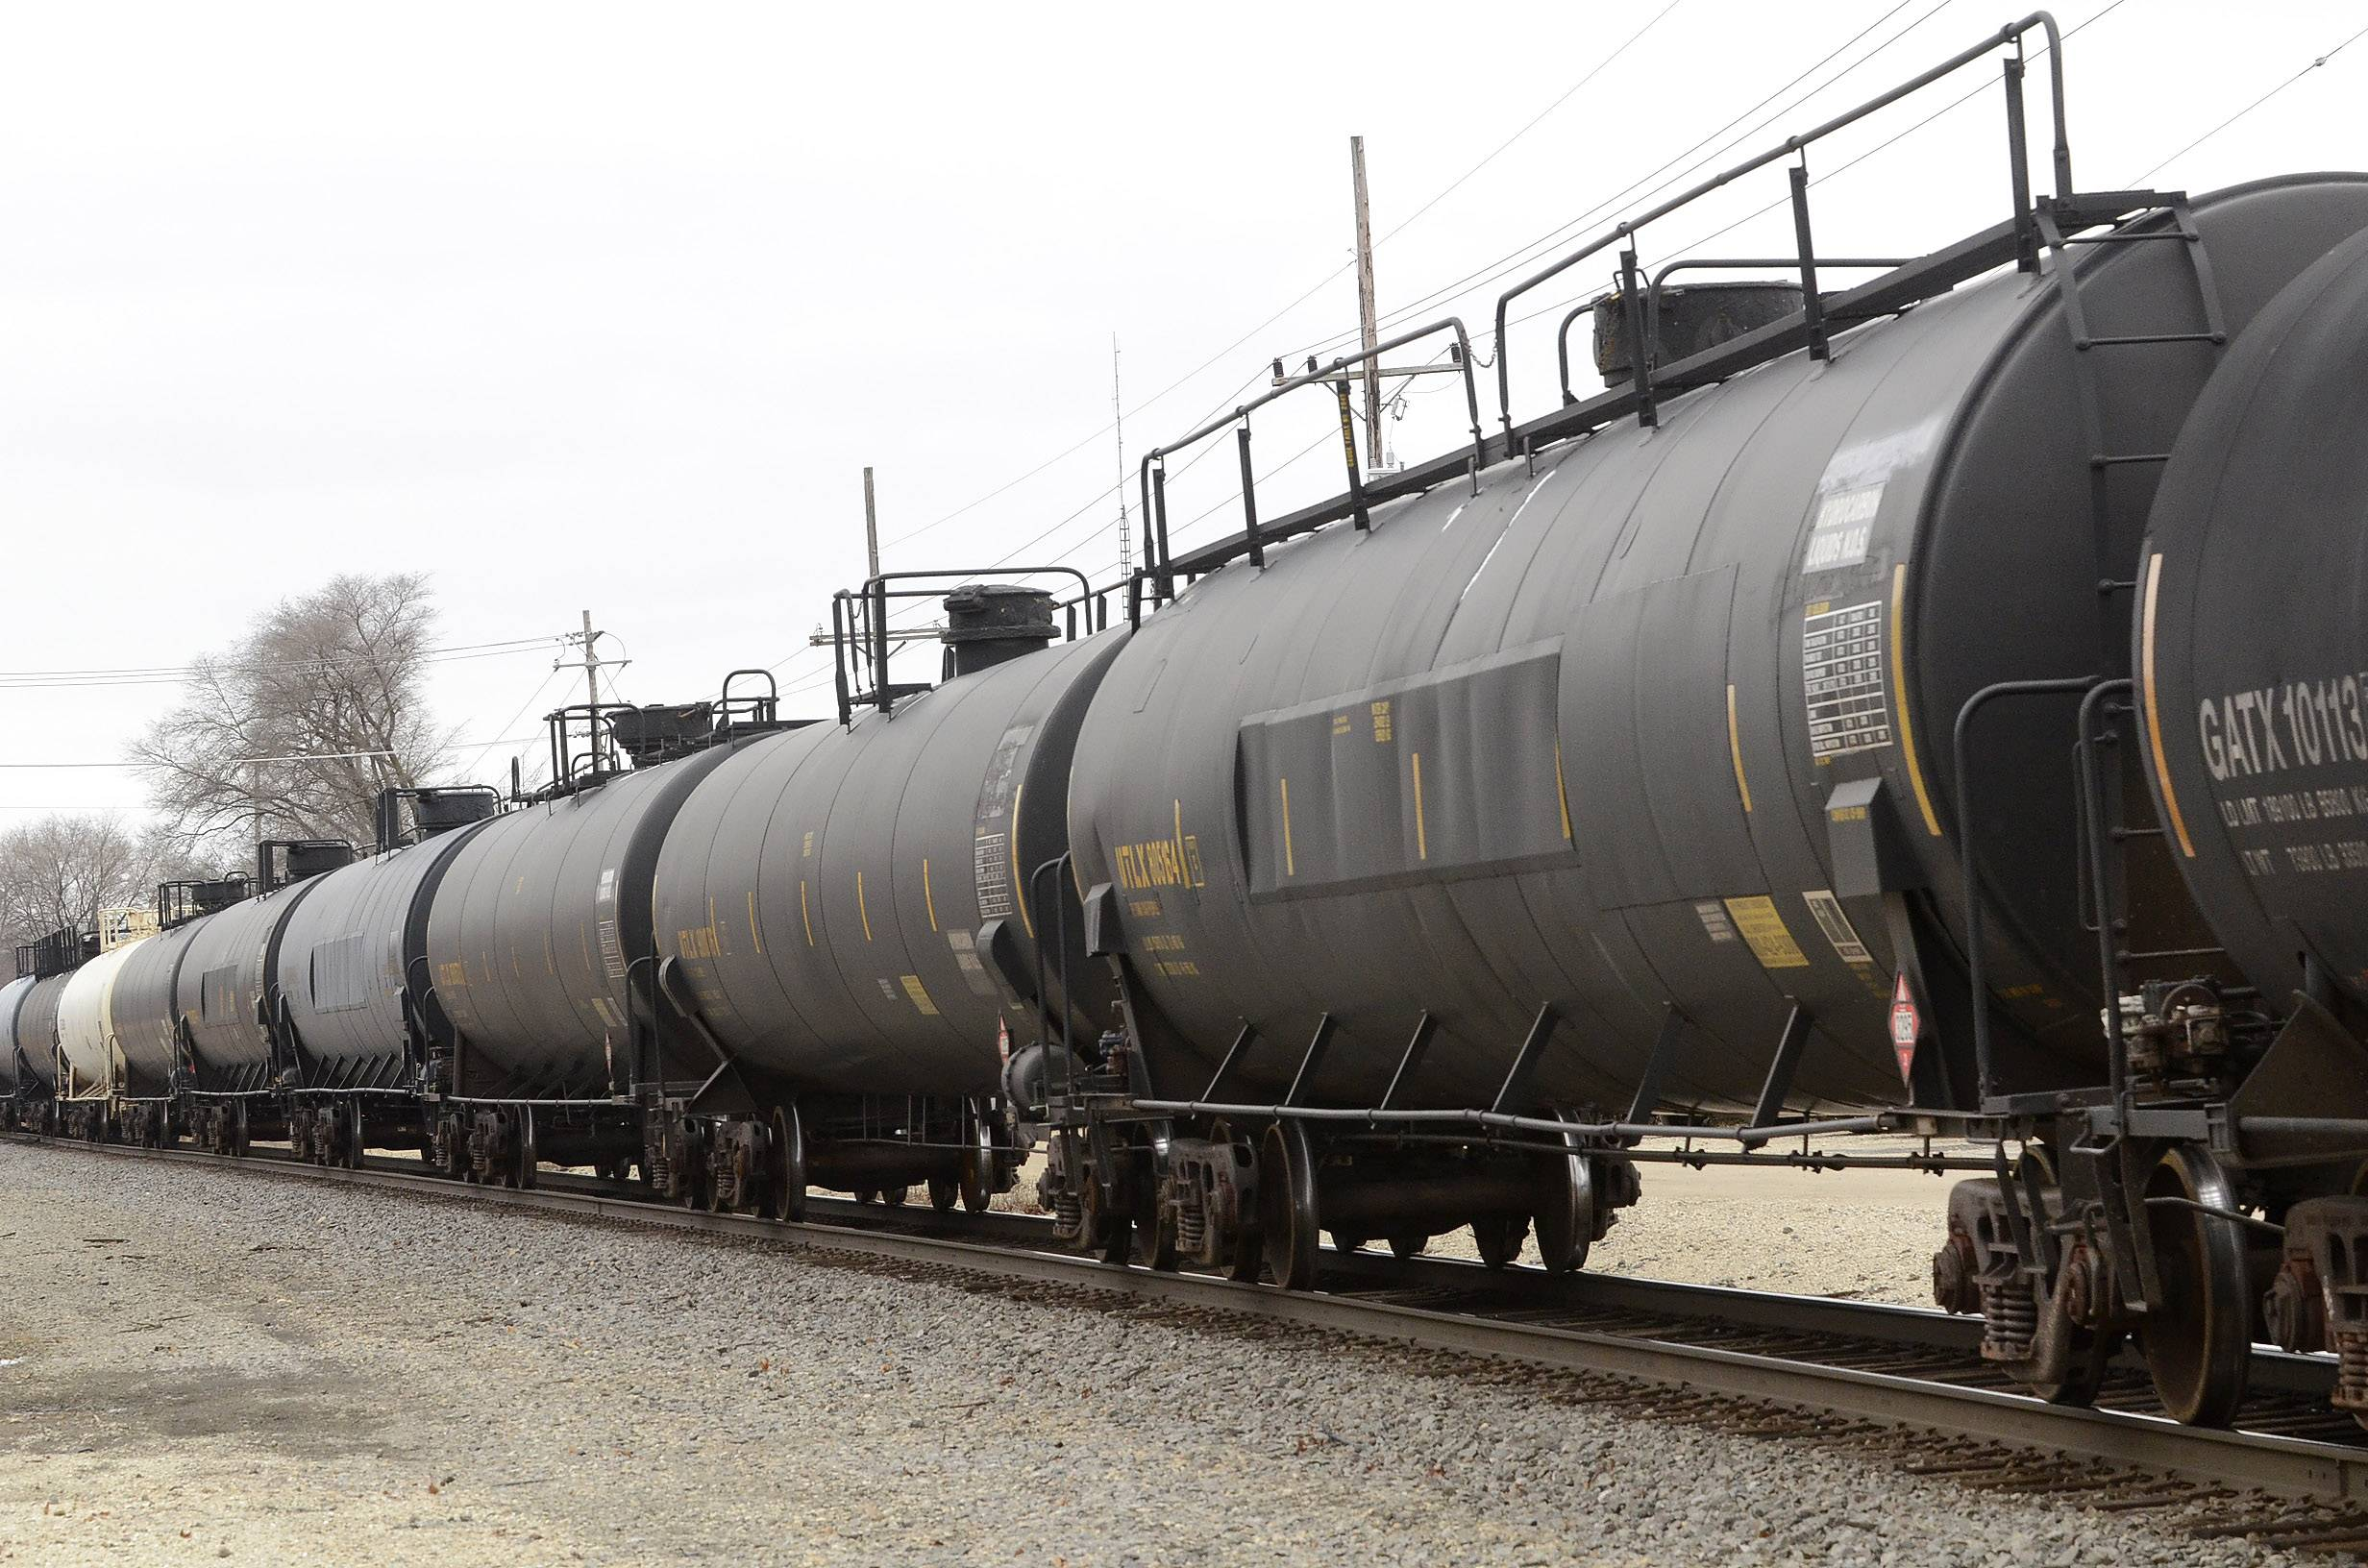 Freight trains carrying hazardous materials are part of the landscape in towns such as Barrington. But leaks and spills from tank cars add up to a significant amount of hazmat being released into the environment.